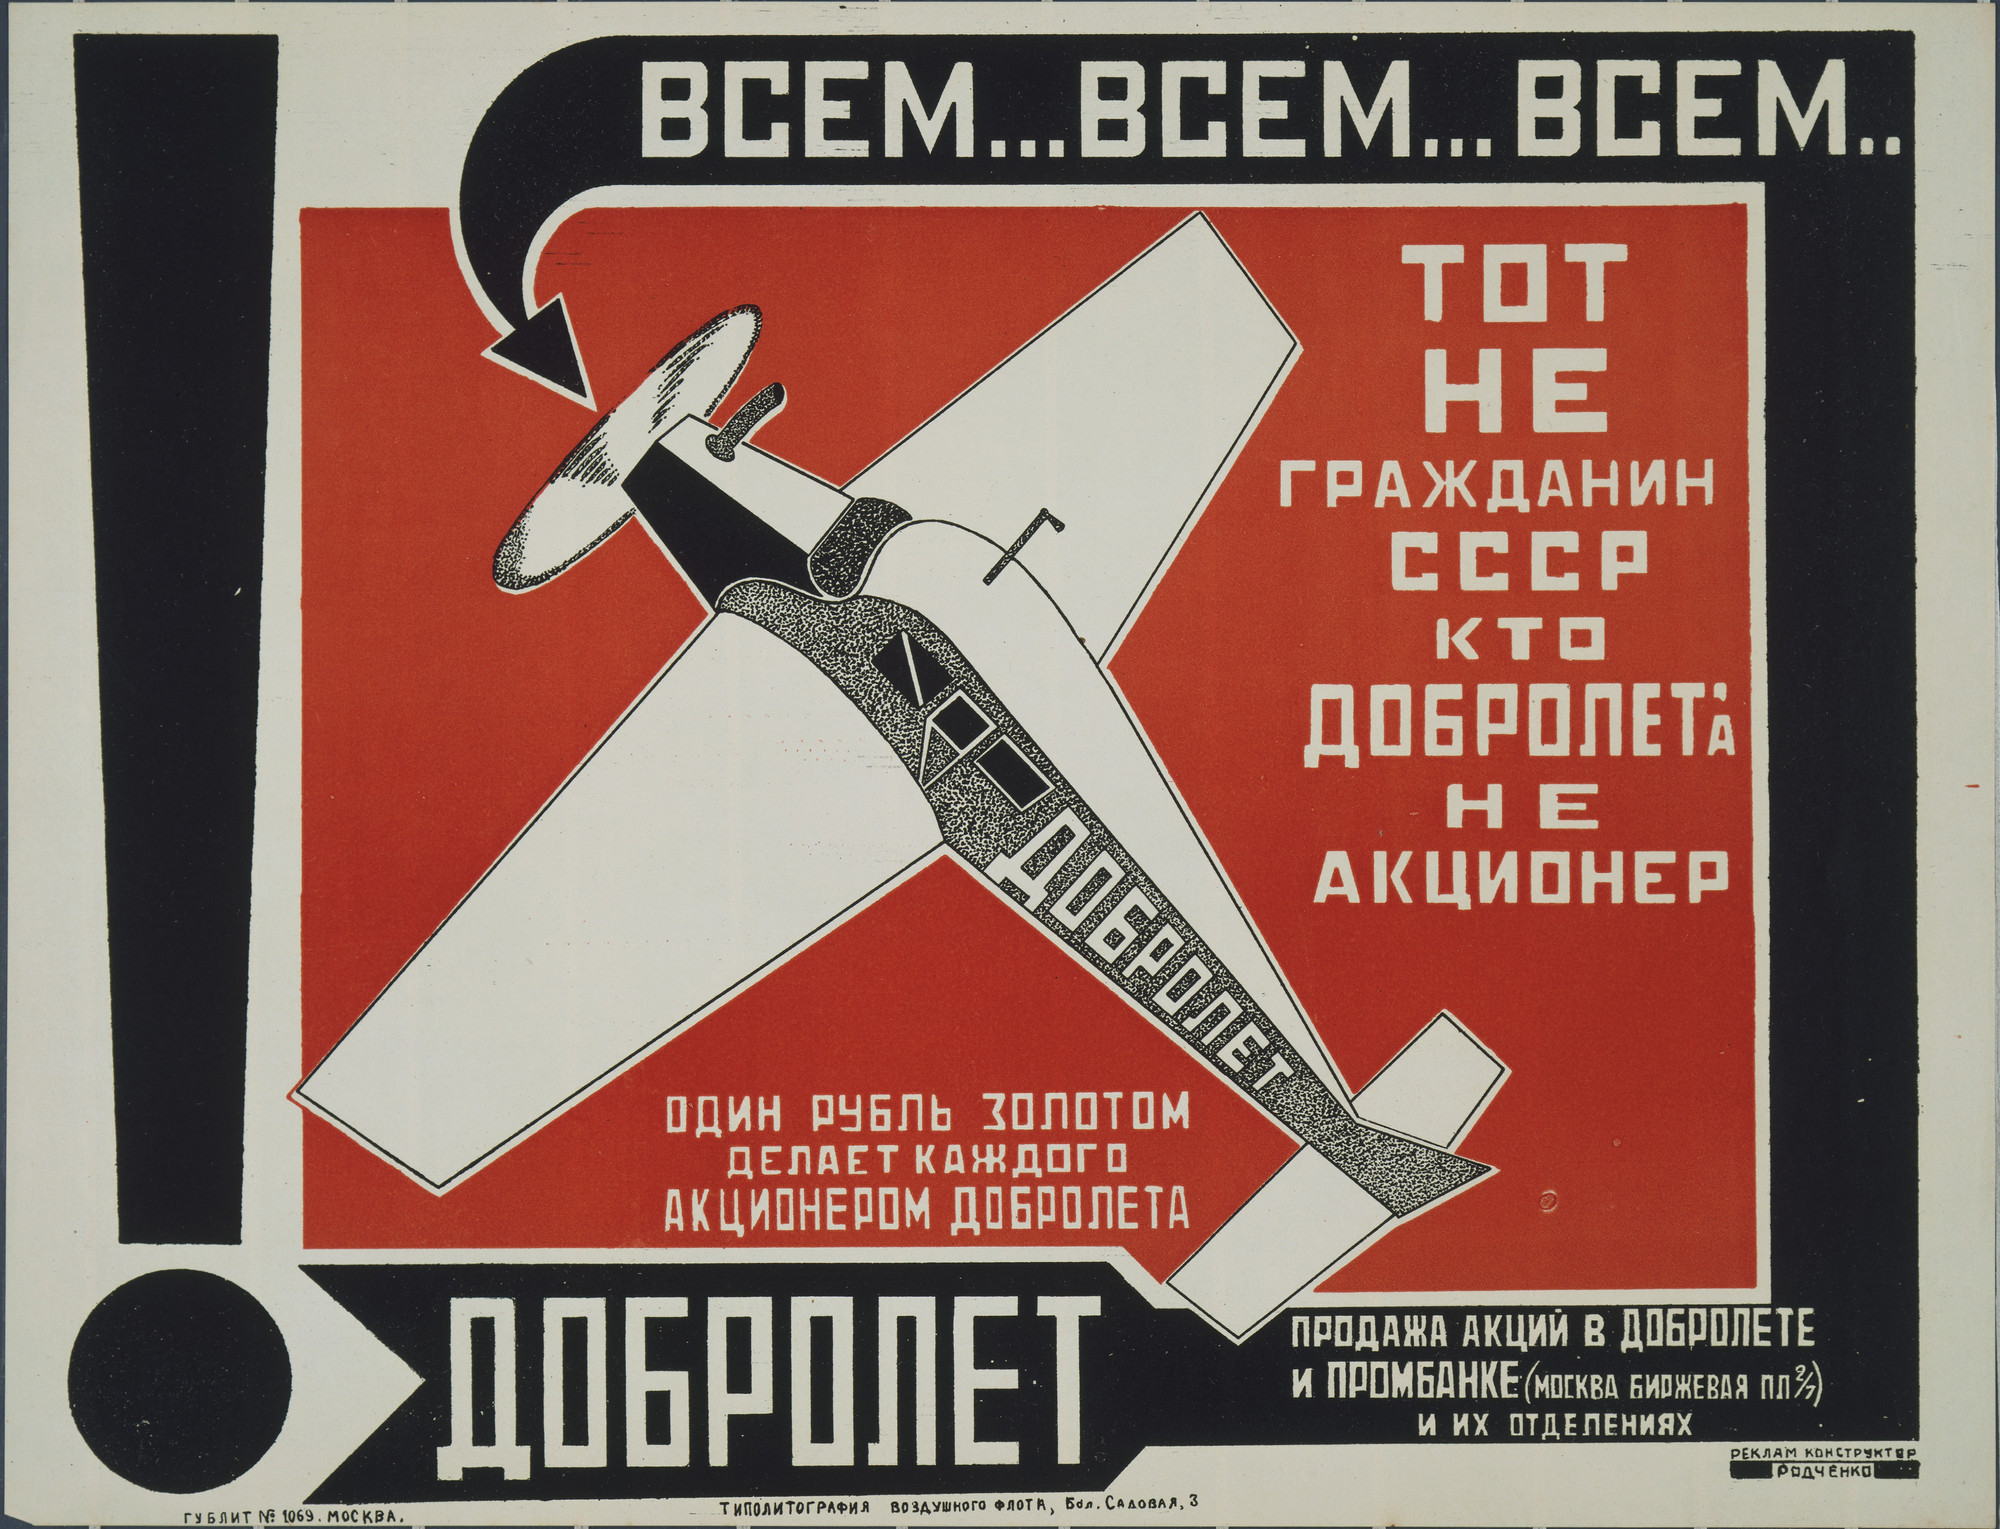 Aleksandr Rodchenko. Dobrolet (Poster for a Russian state airline). 1923